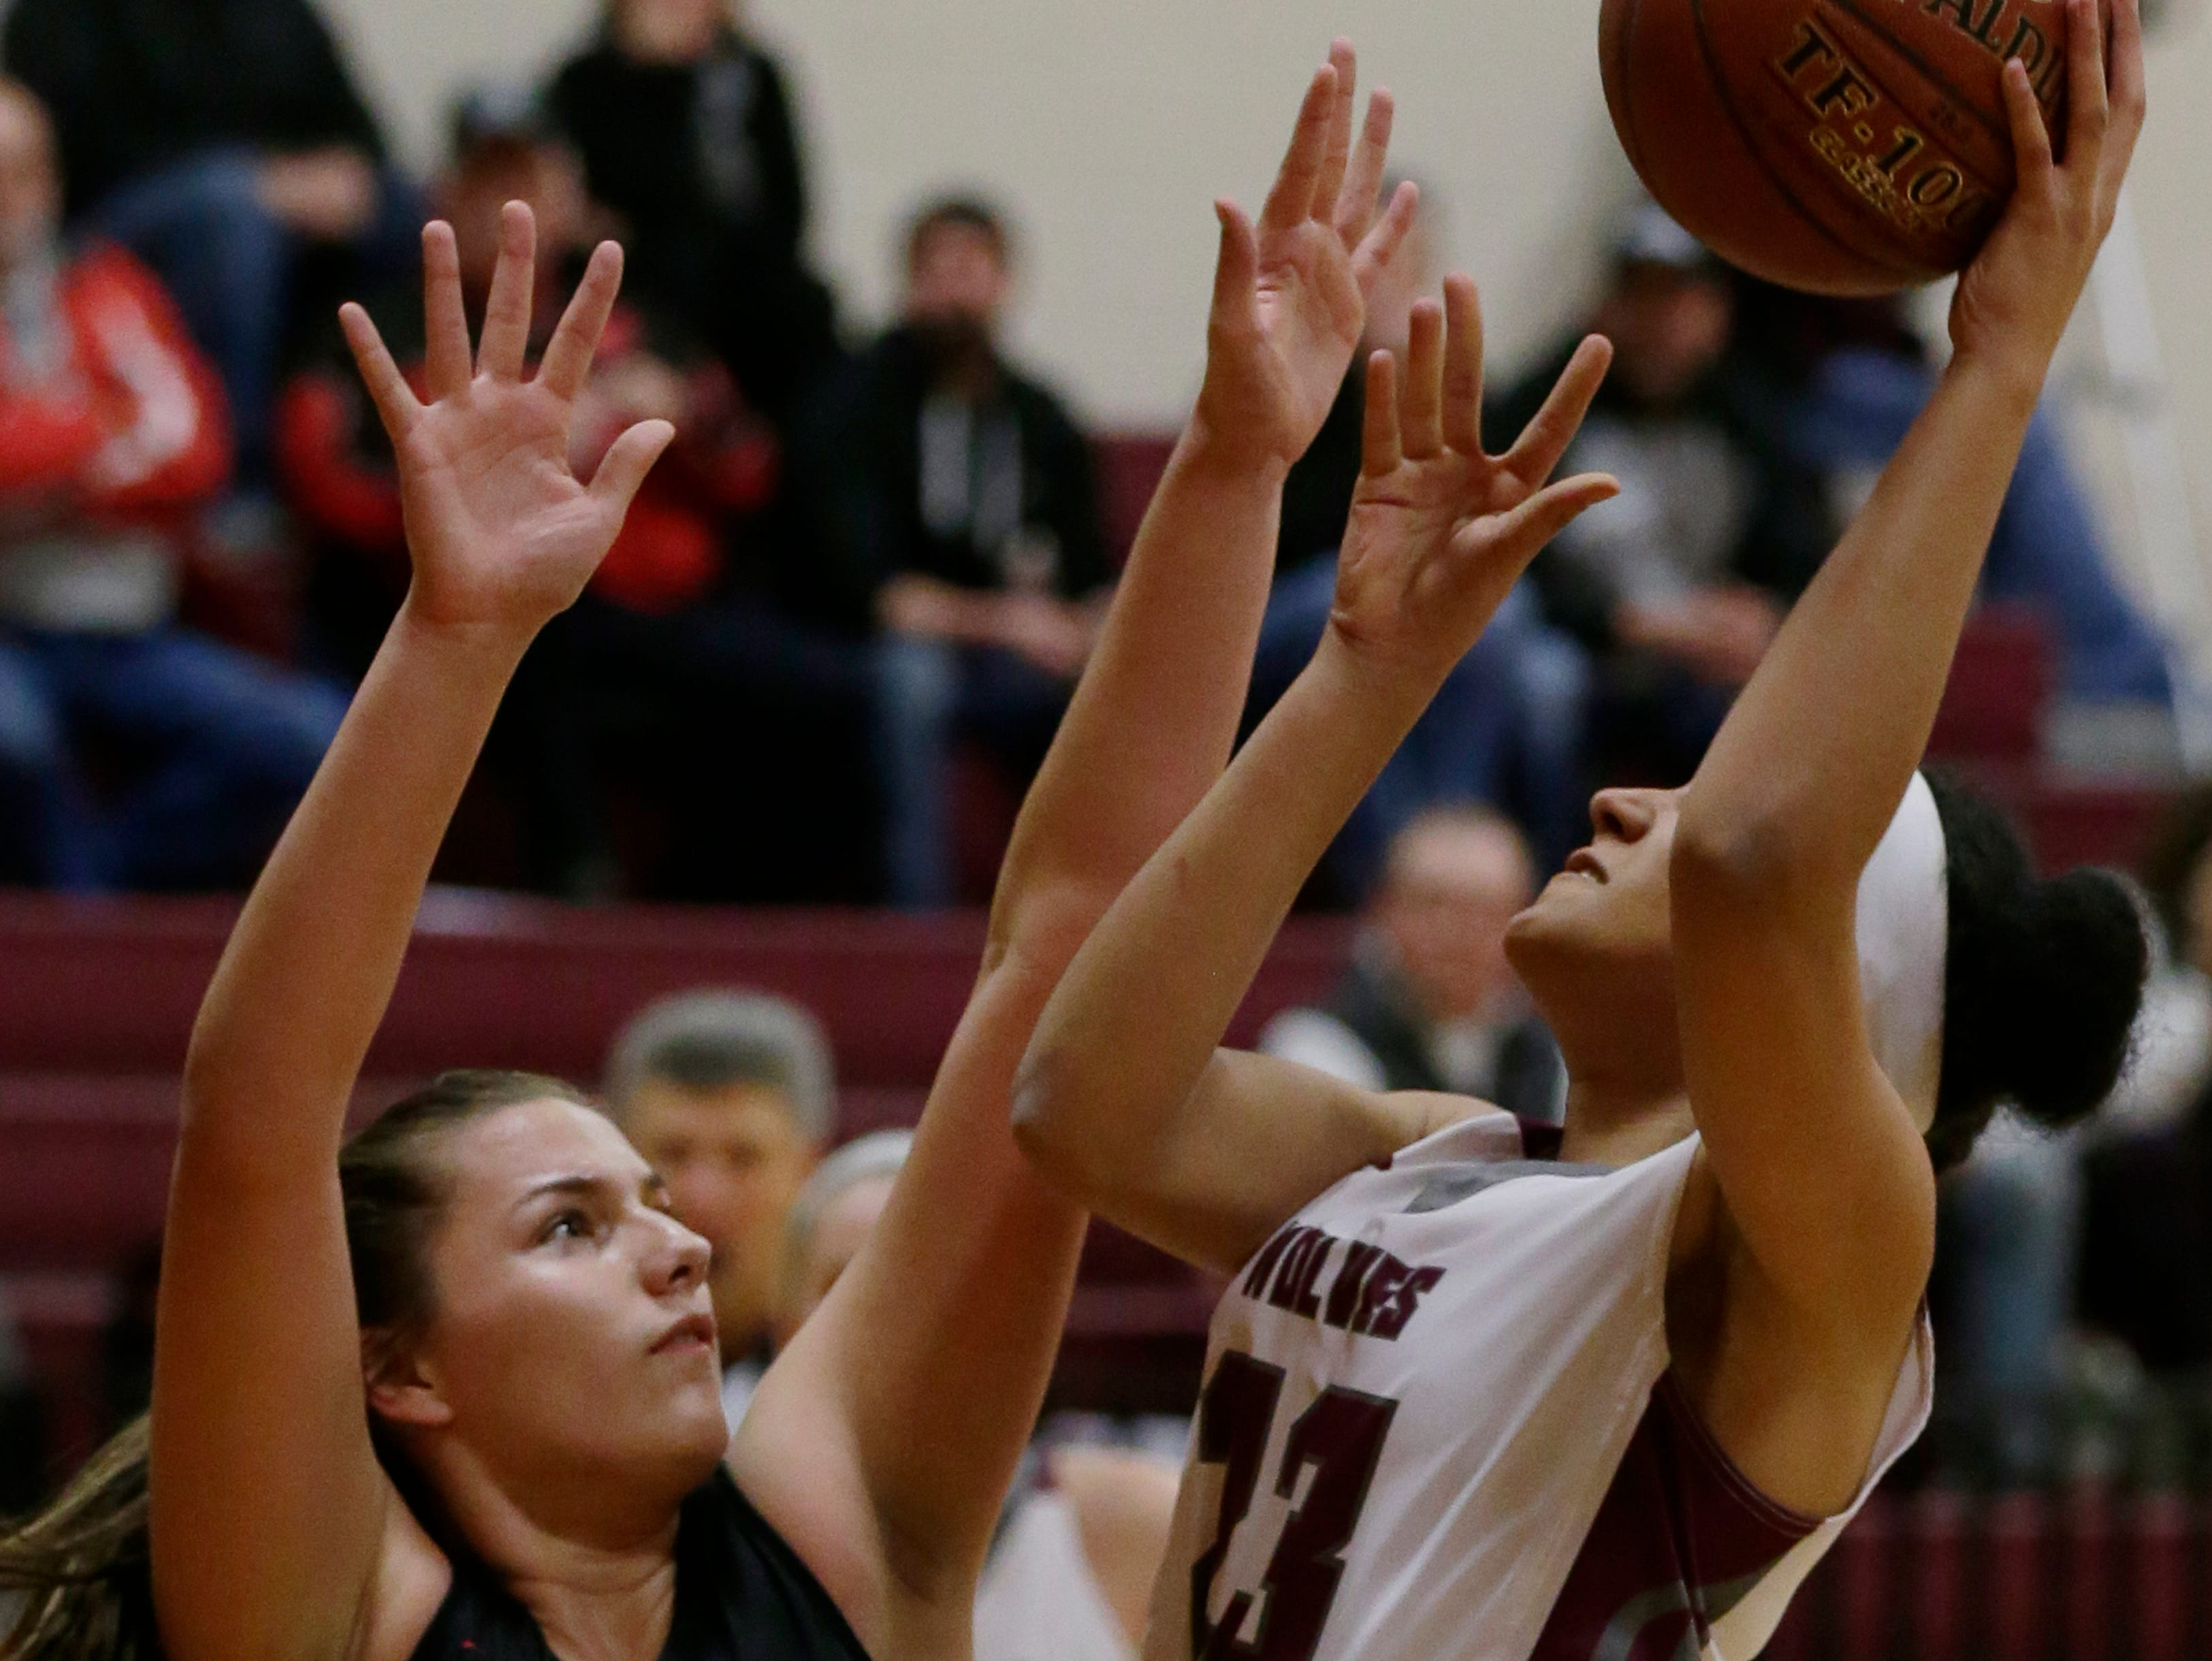 Winneconne's Airika Szafranek shoots over Lourdes Academy's Raechel Russo during their game. Winneconne Wolves played Lourdes Academy Knights, Tuesday, Dec. 11, 2018. Winneconne won 56 - 44.